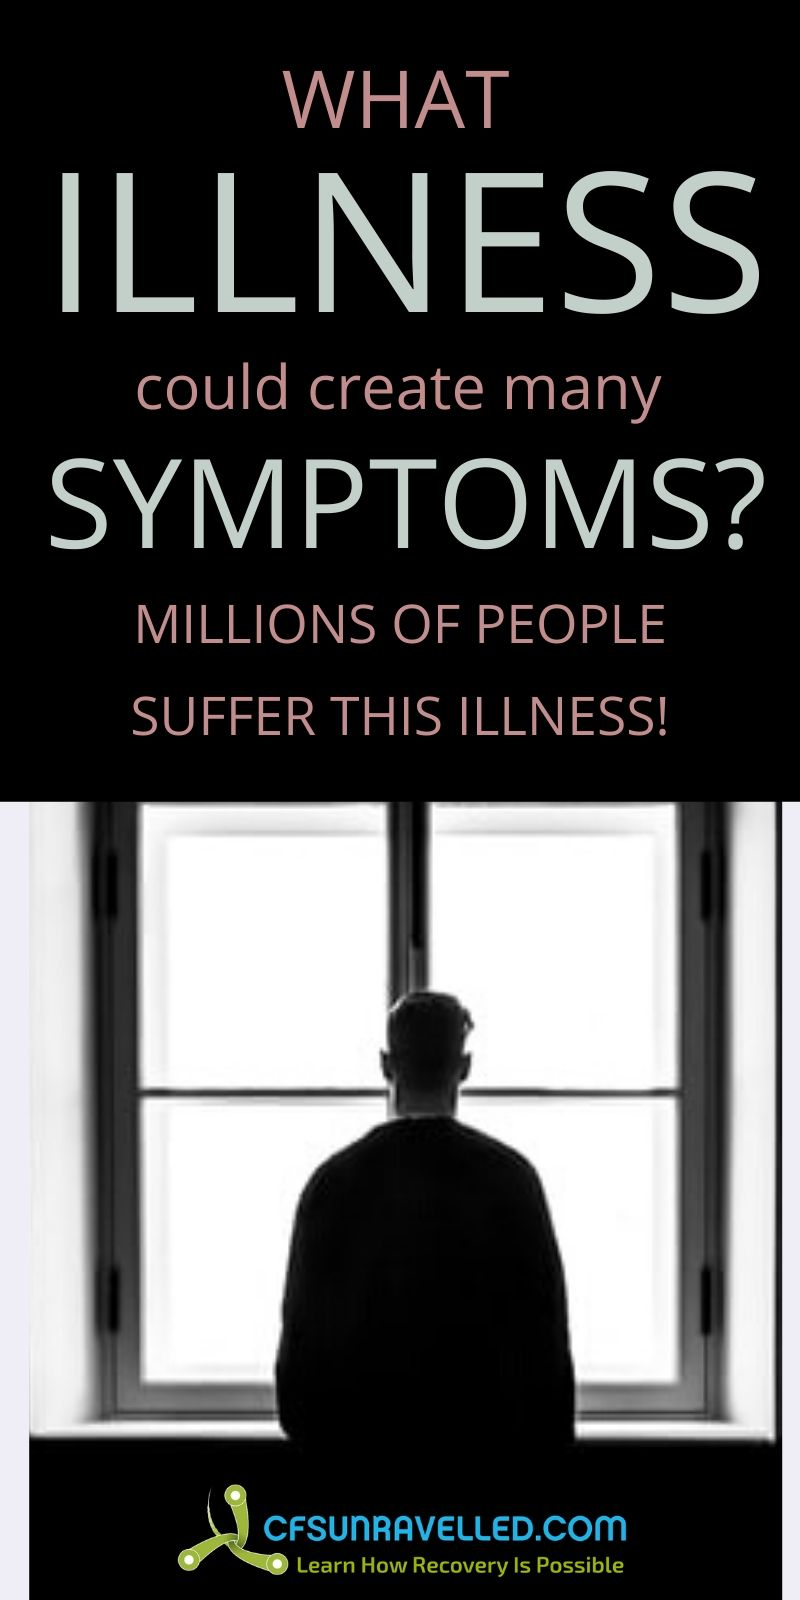 Man looking out at the window with what illness ccould create many symptoms text